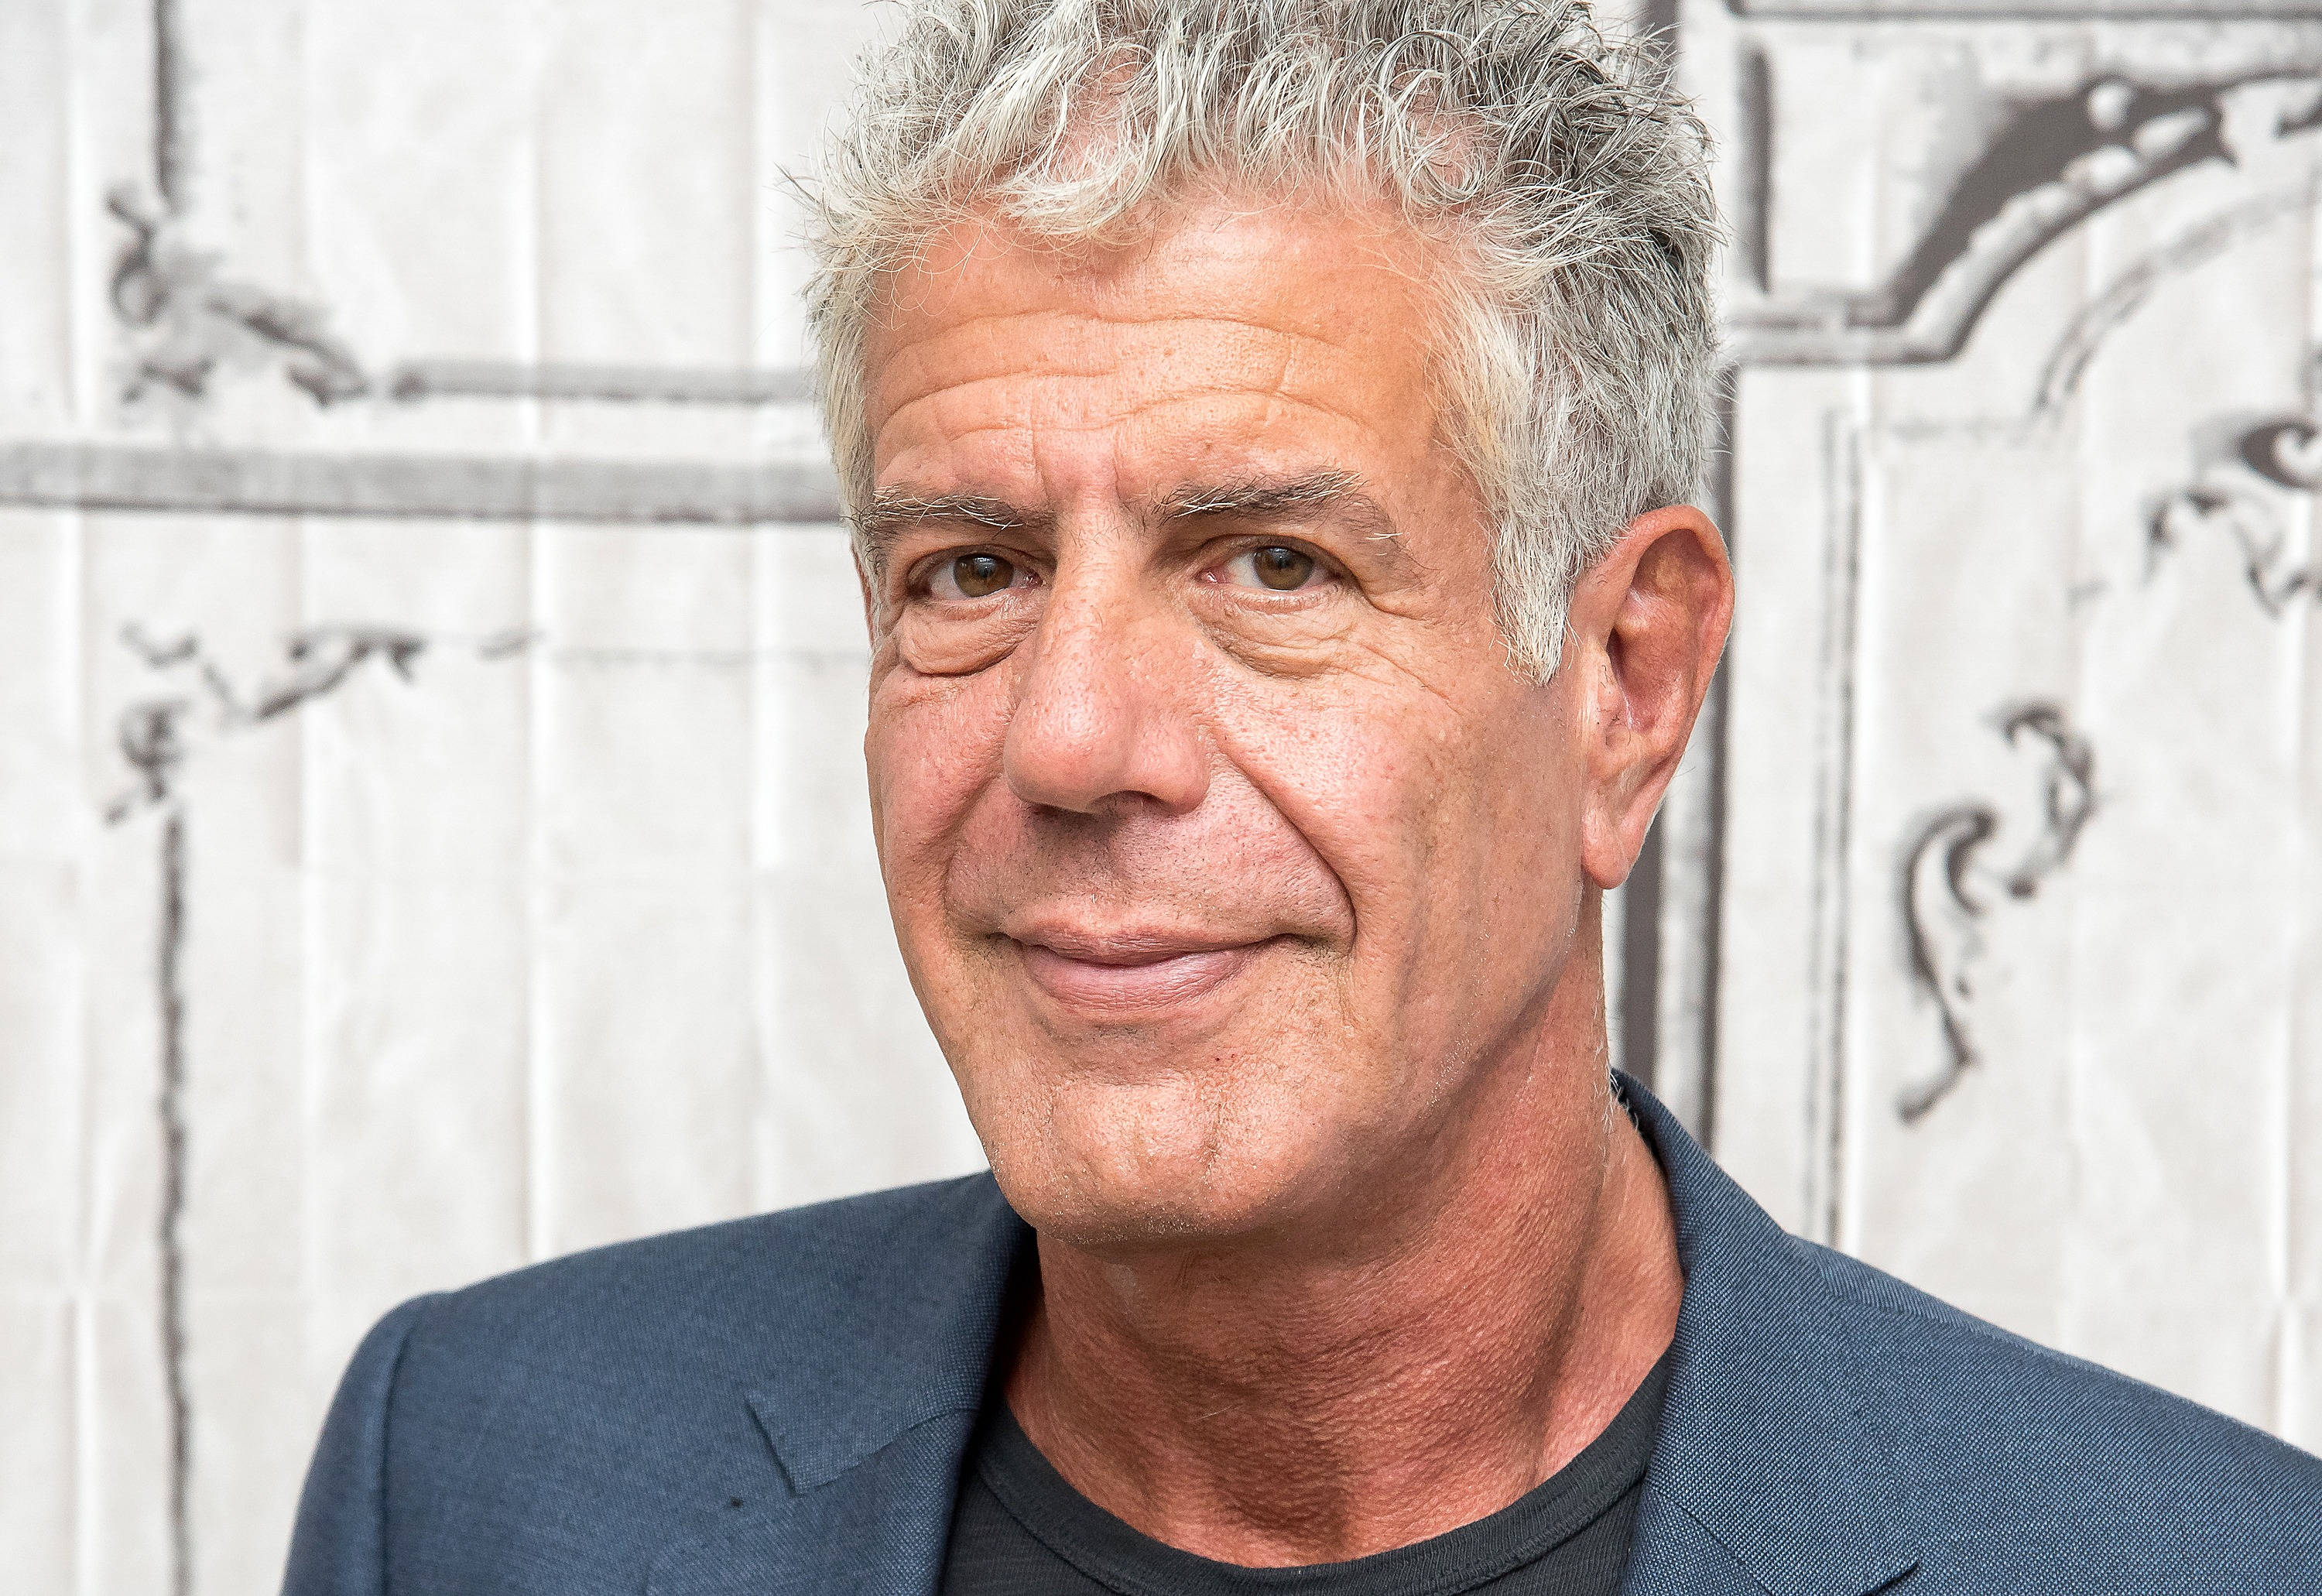 You Could Own Anthony Bourdain's Most Prized Kitchen Knife, for About $6,000